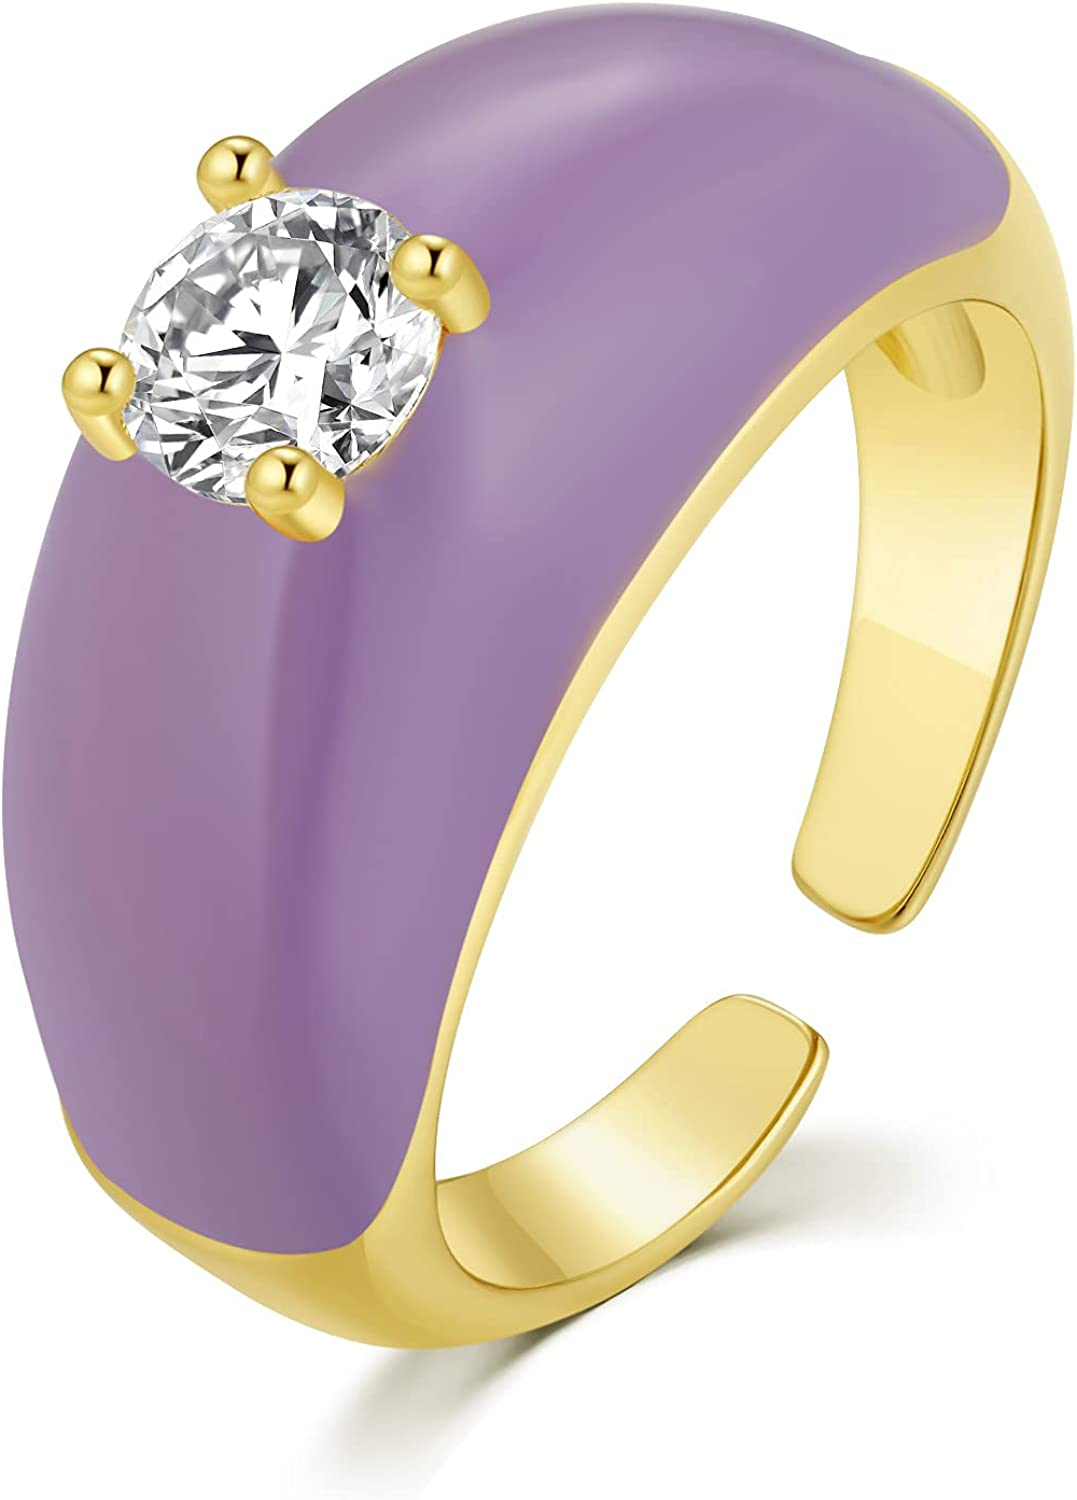 SISMIURRA Enamel Colorful Rings for Women 14k Gold Plated Cubic Zirconia CZ Statement Finger Bands Rings Halloween/Birthday/Christmas Gifts for Women Wife Girlfriend